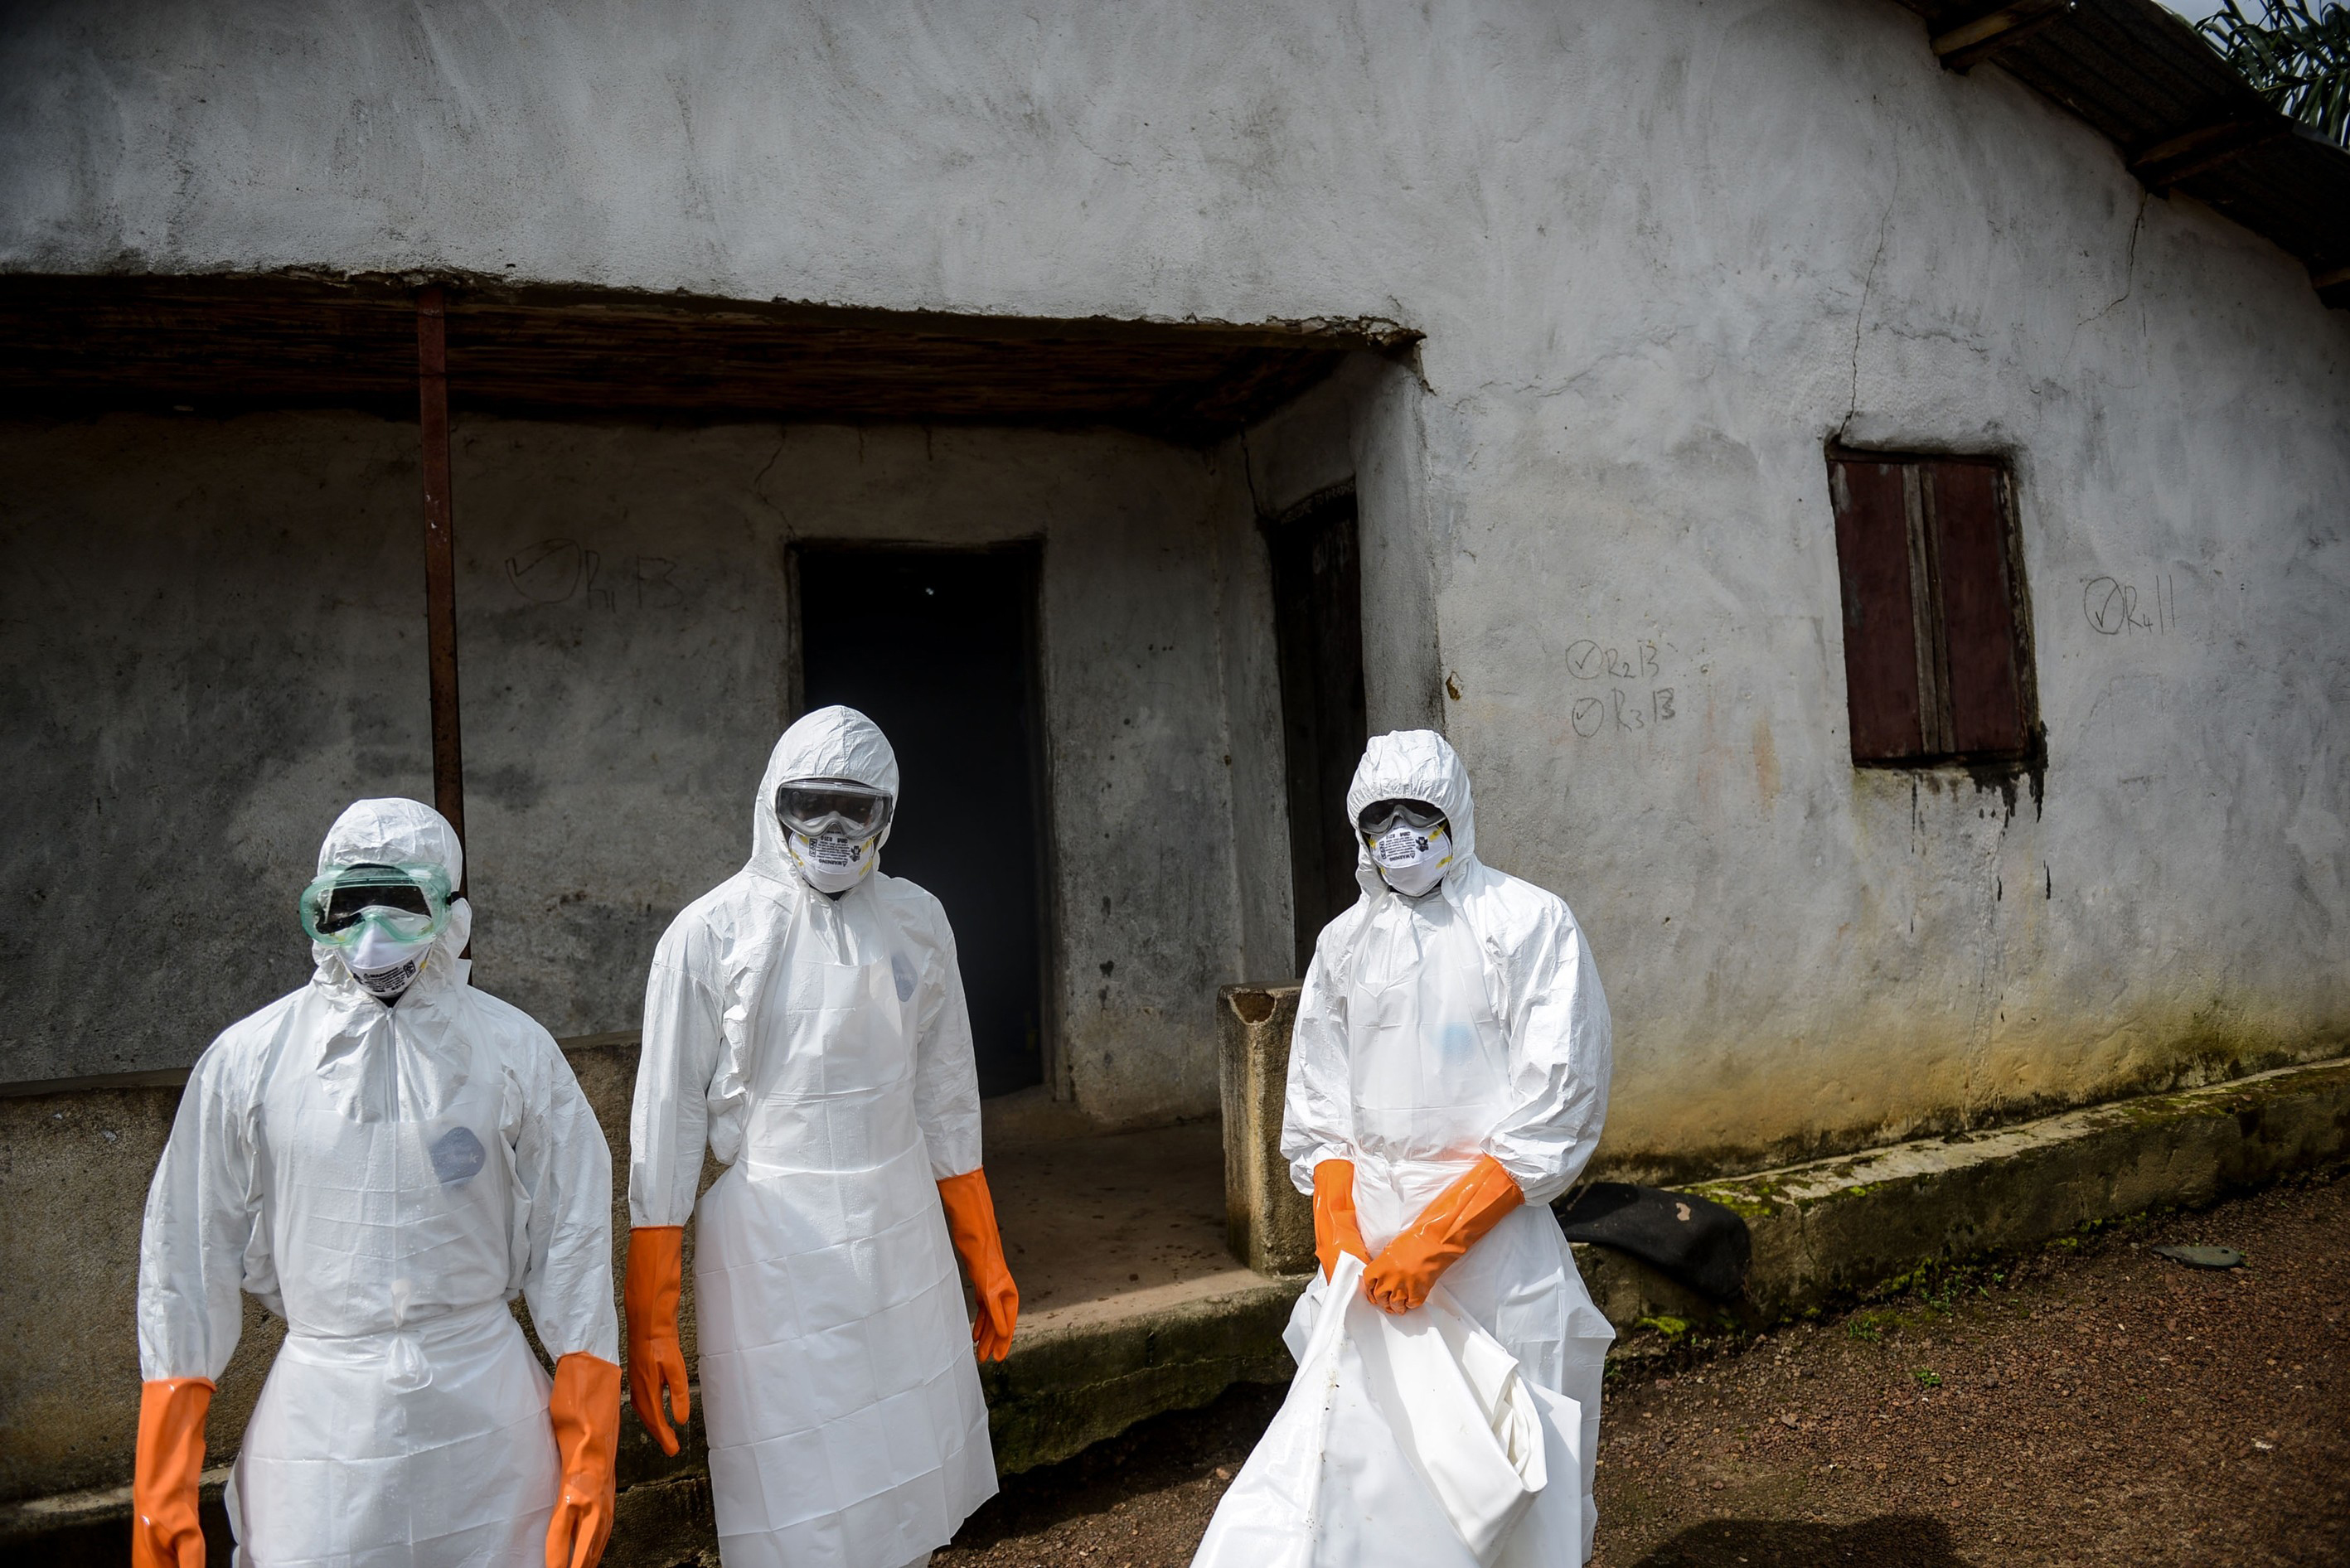 A group of young volunteers wear special uniforms sterilize round the house after Baindu Koruma (28) died due to the Ebola virus, in Lango village, Kenema, Sierra Leone on August 25, 2014.